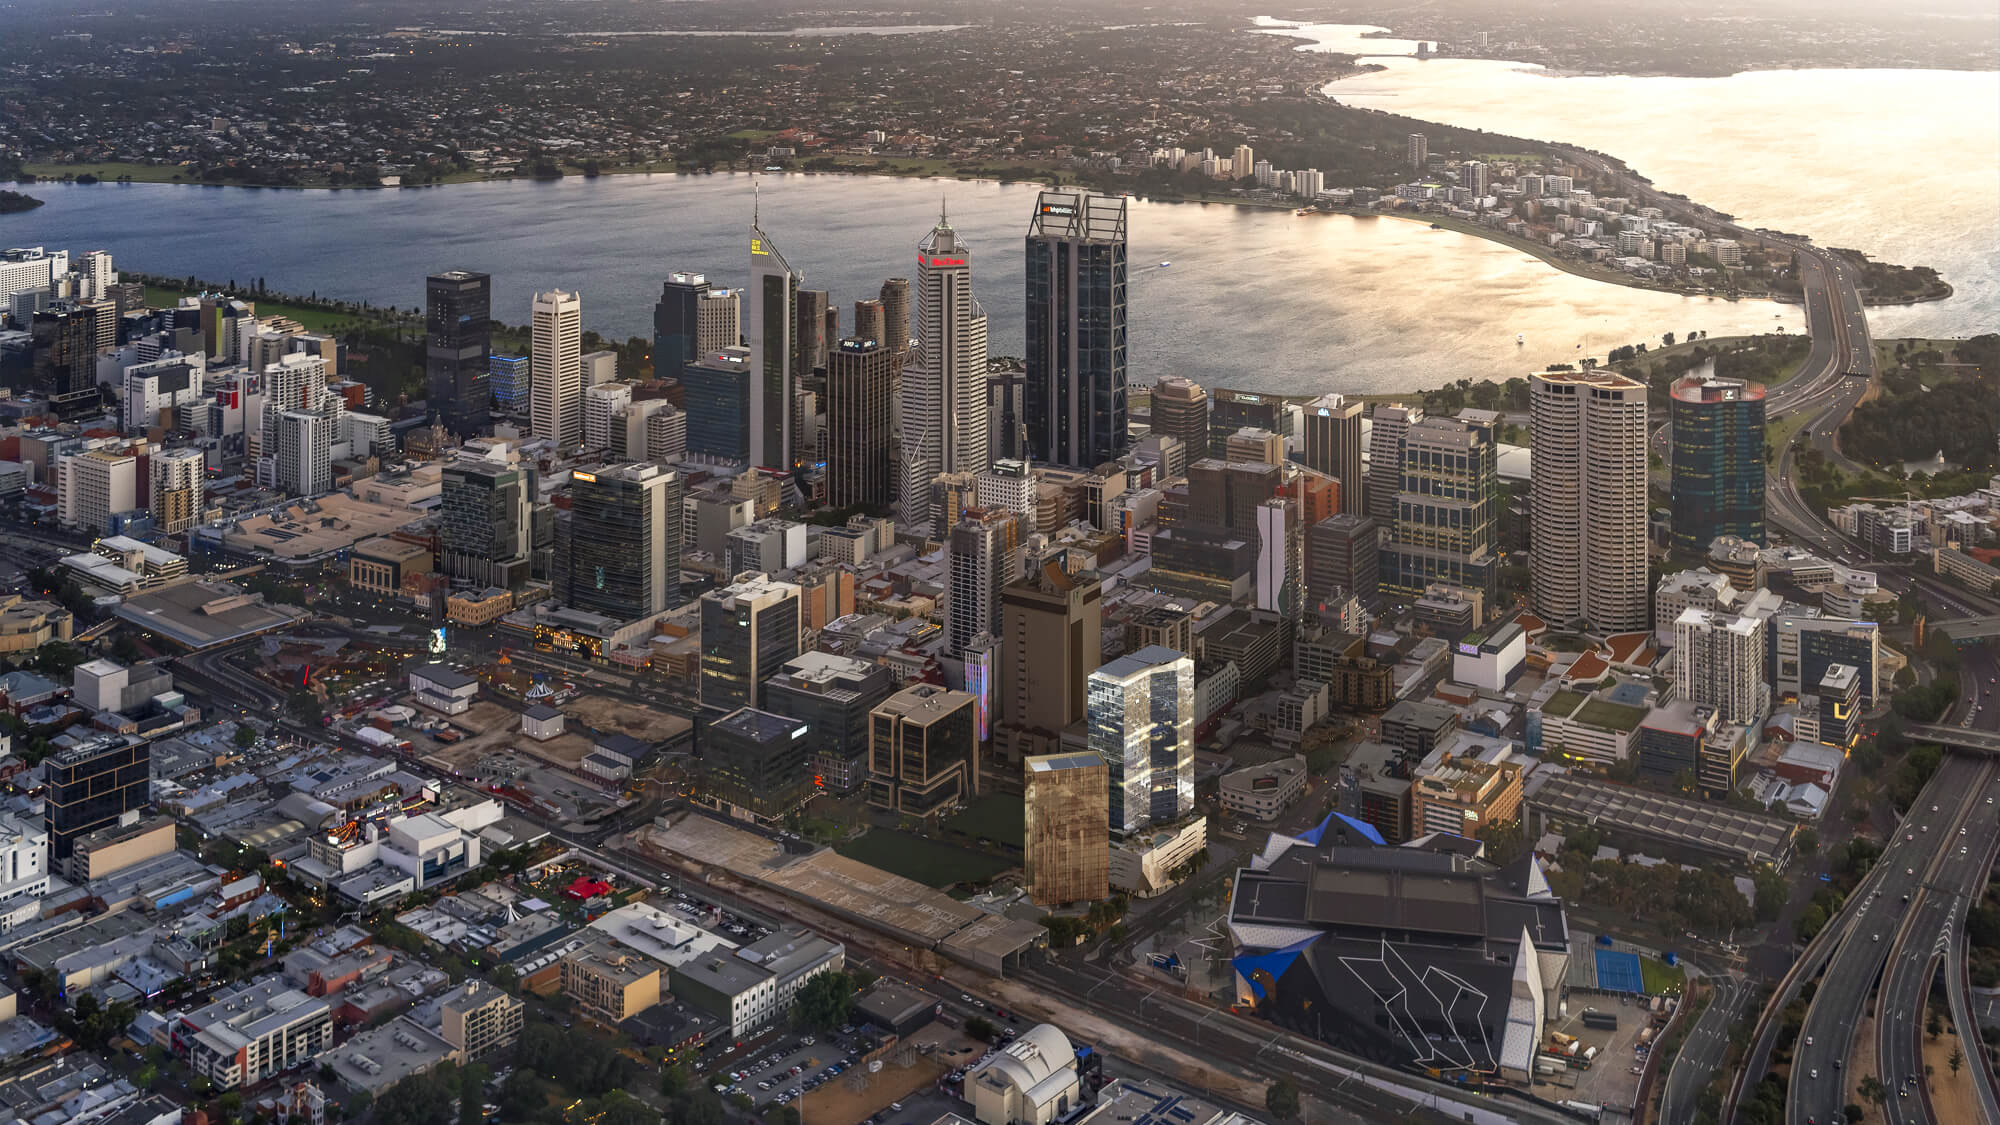 Aerial view of Perth city center and bay area